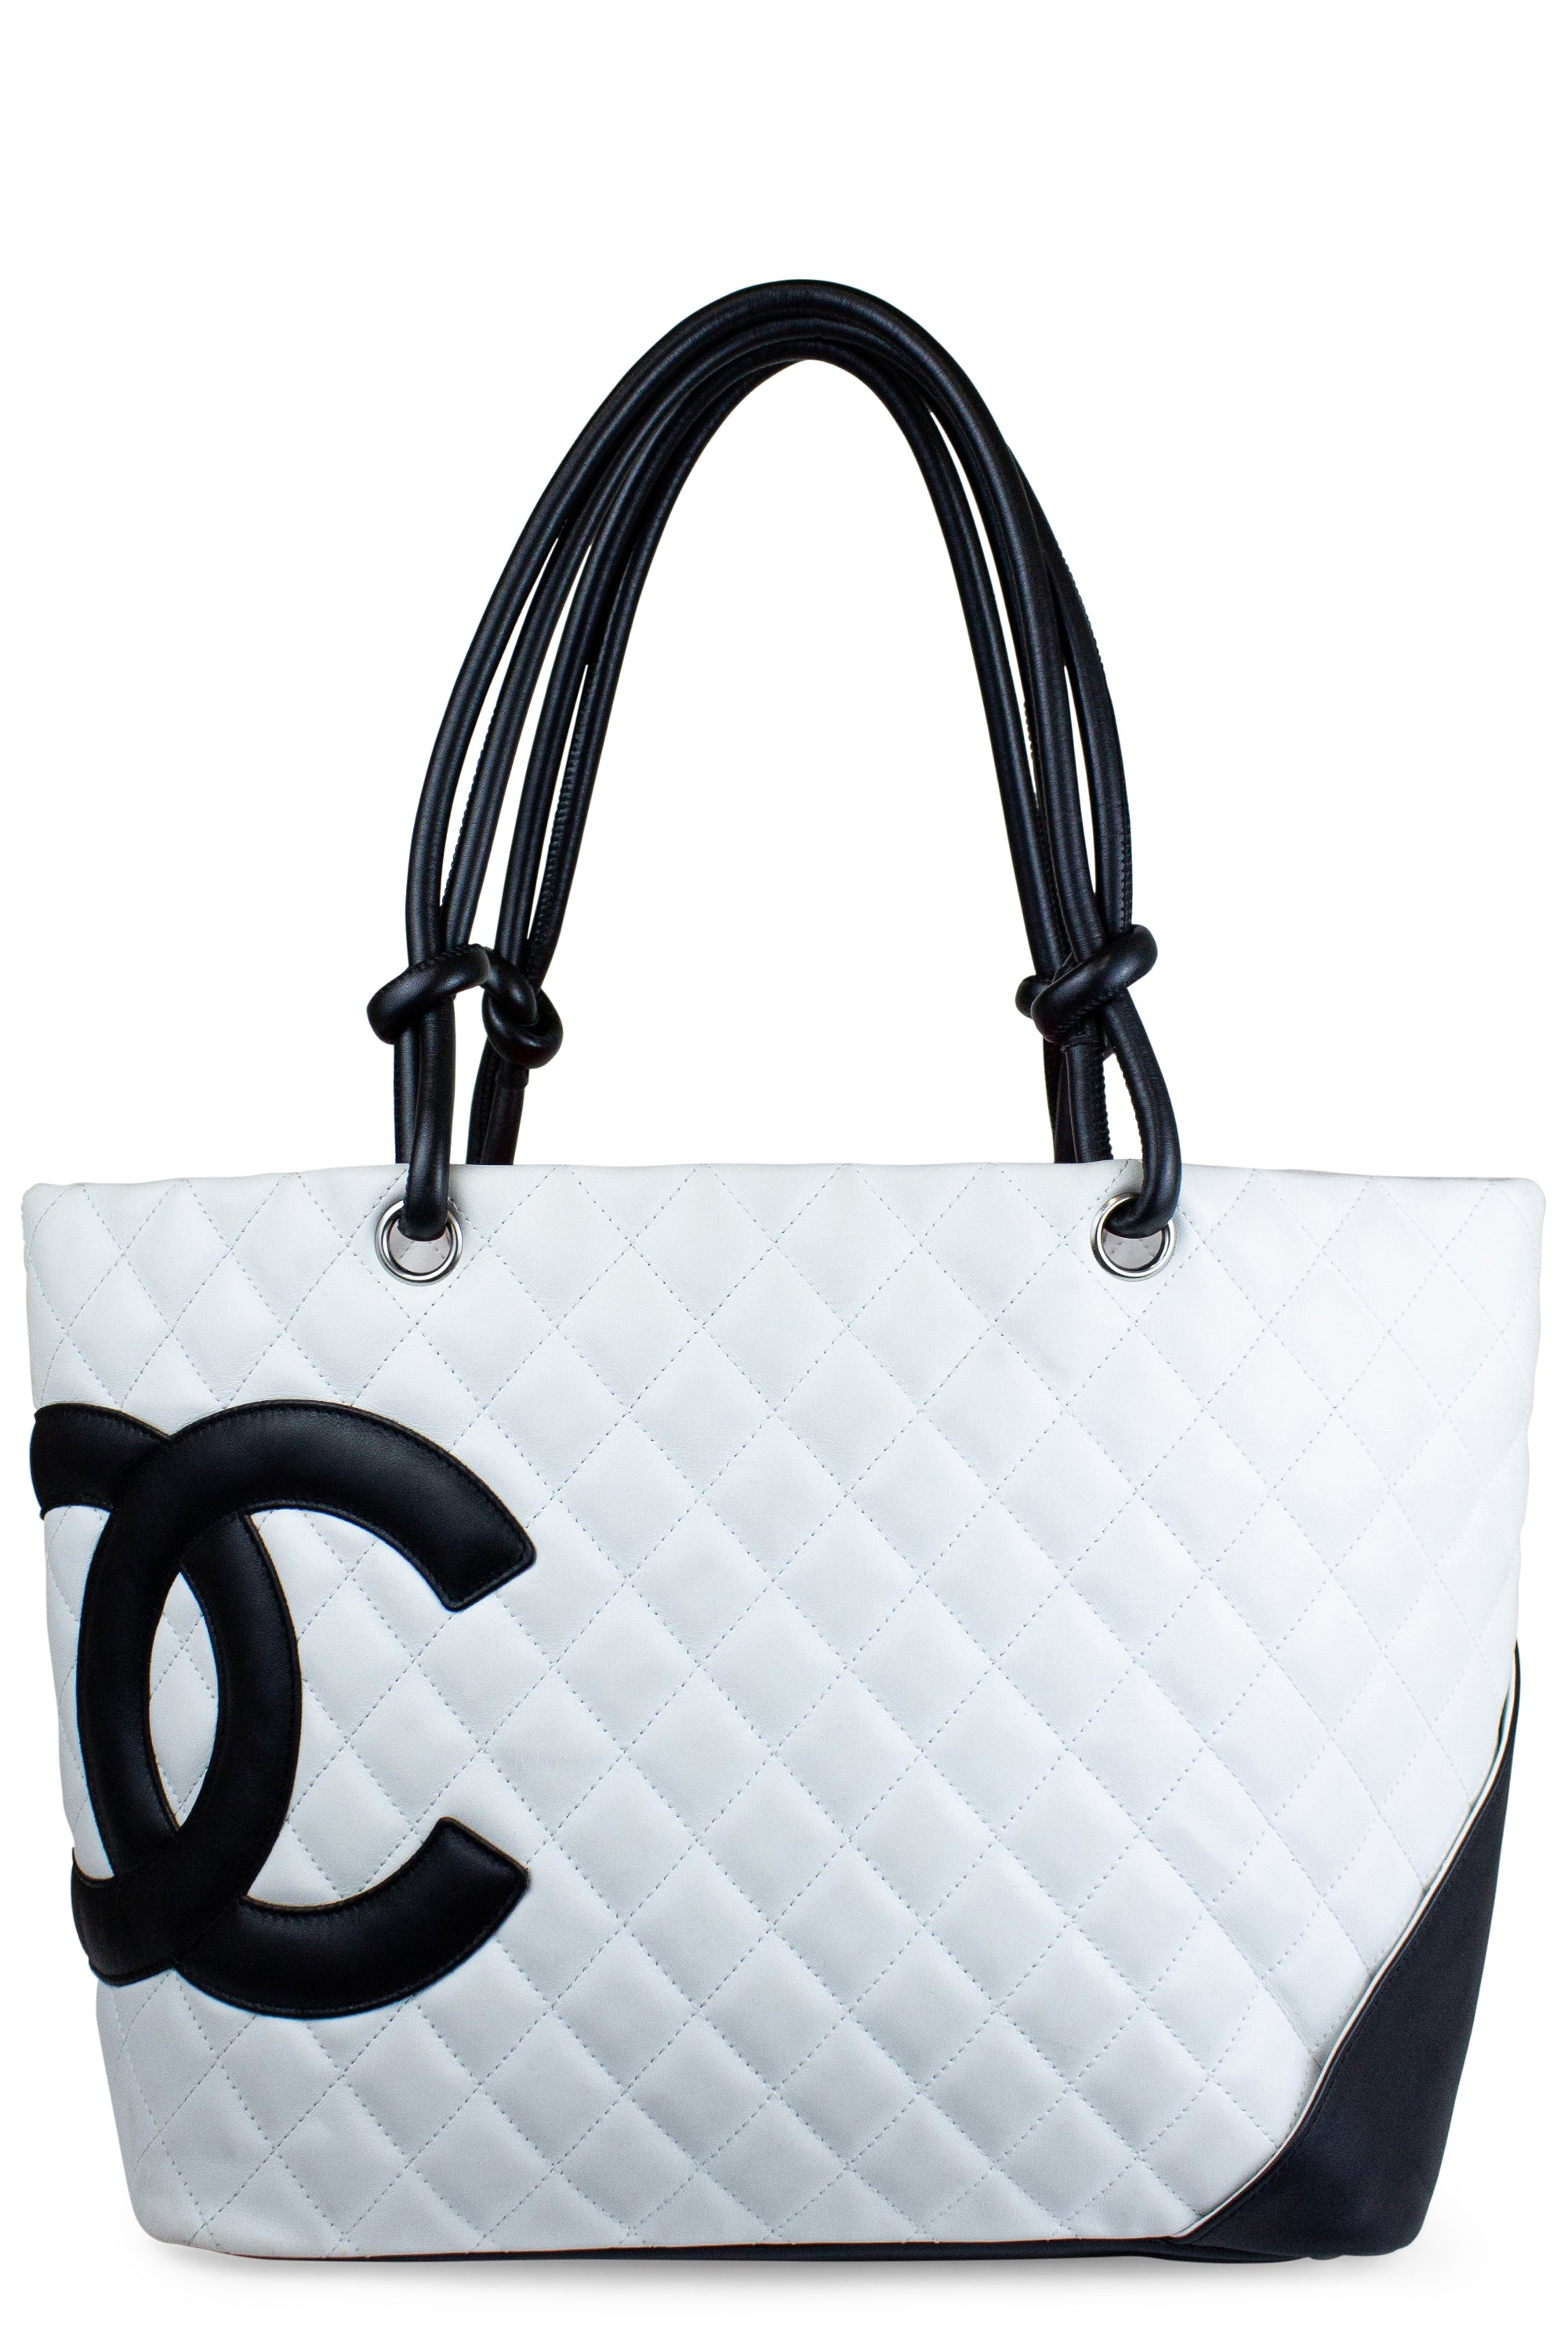 Summer Sale Treasure Nr. 1 - CHANEL Large Quilted Shopper